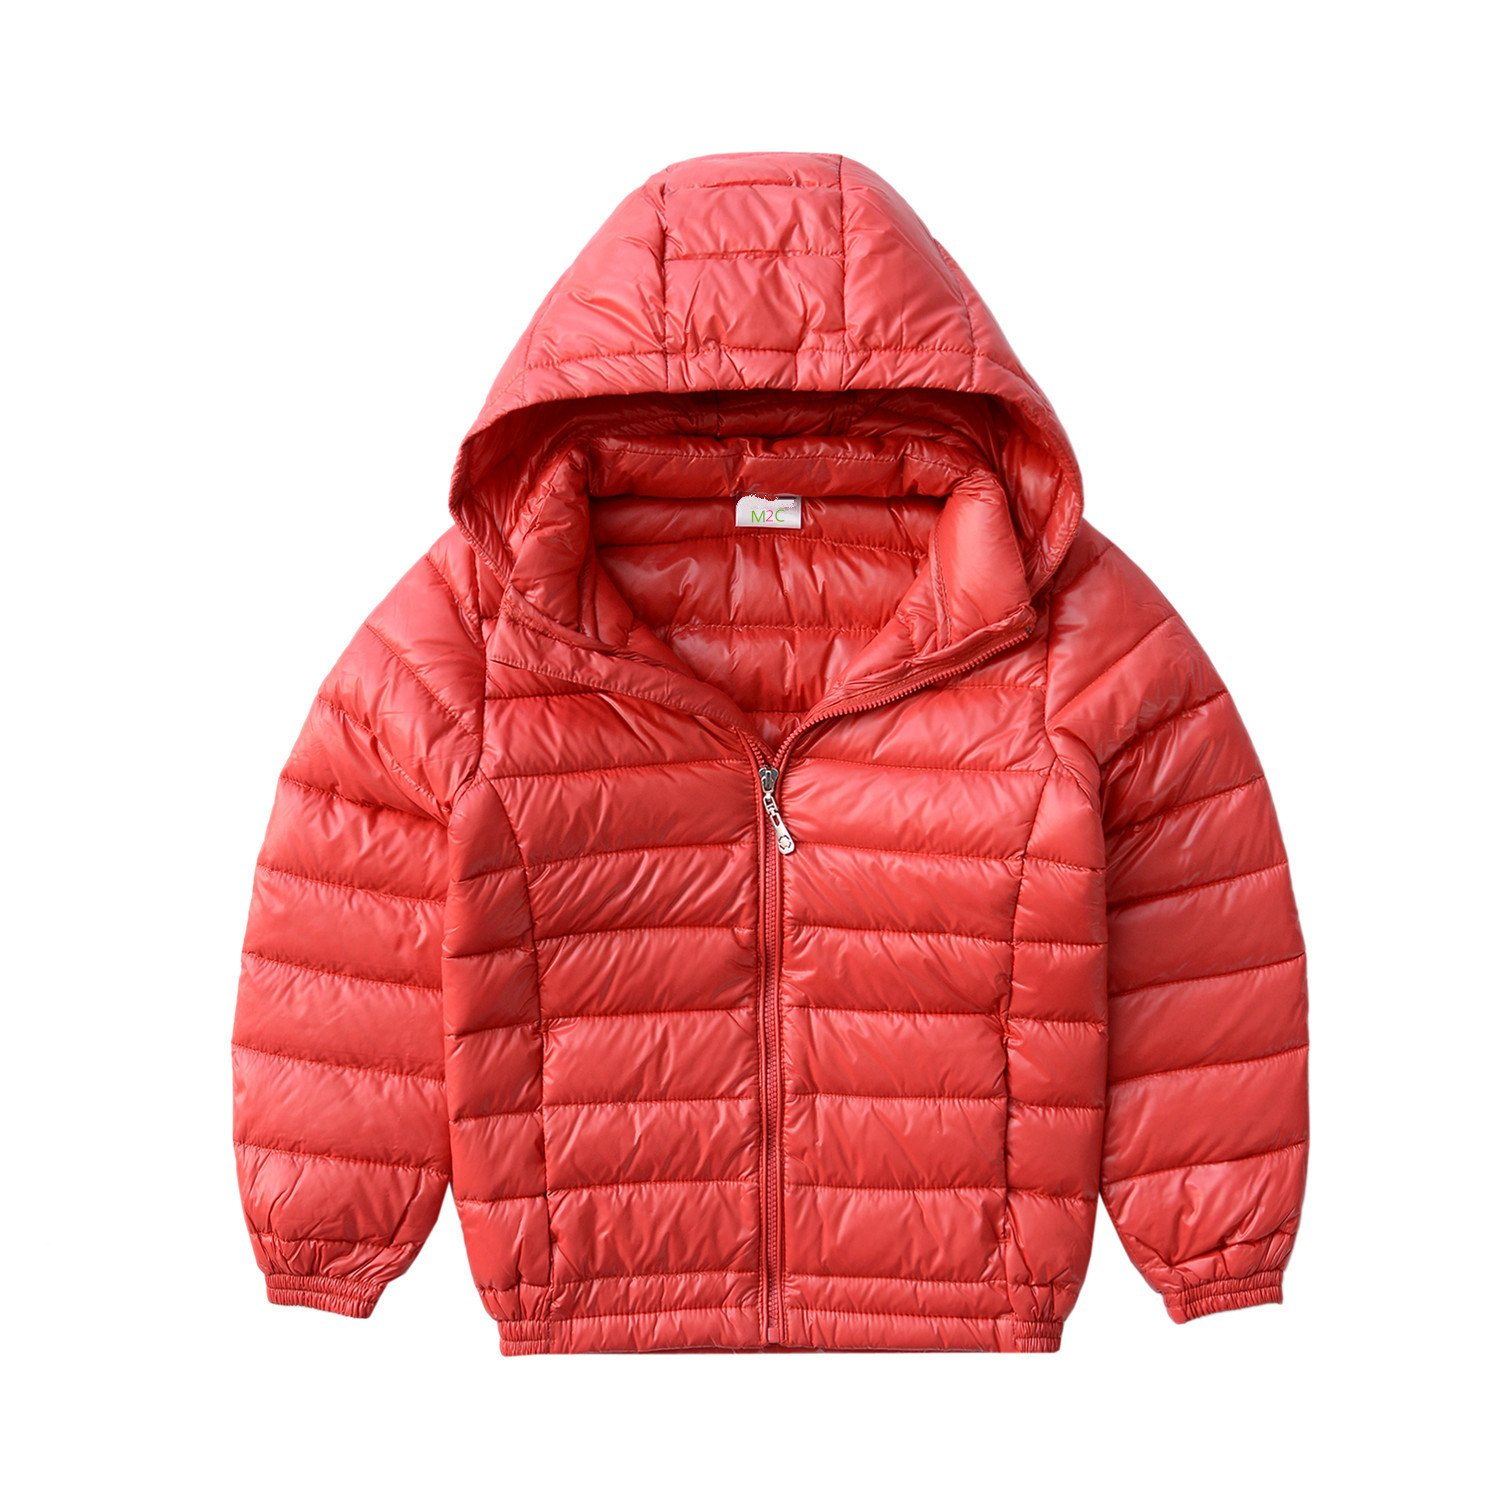 M2C Boys Ultralight Packable Down Bubble Jacket with Hood